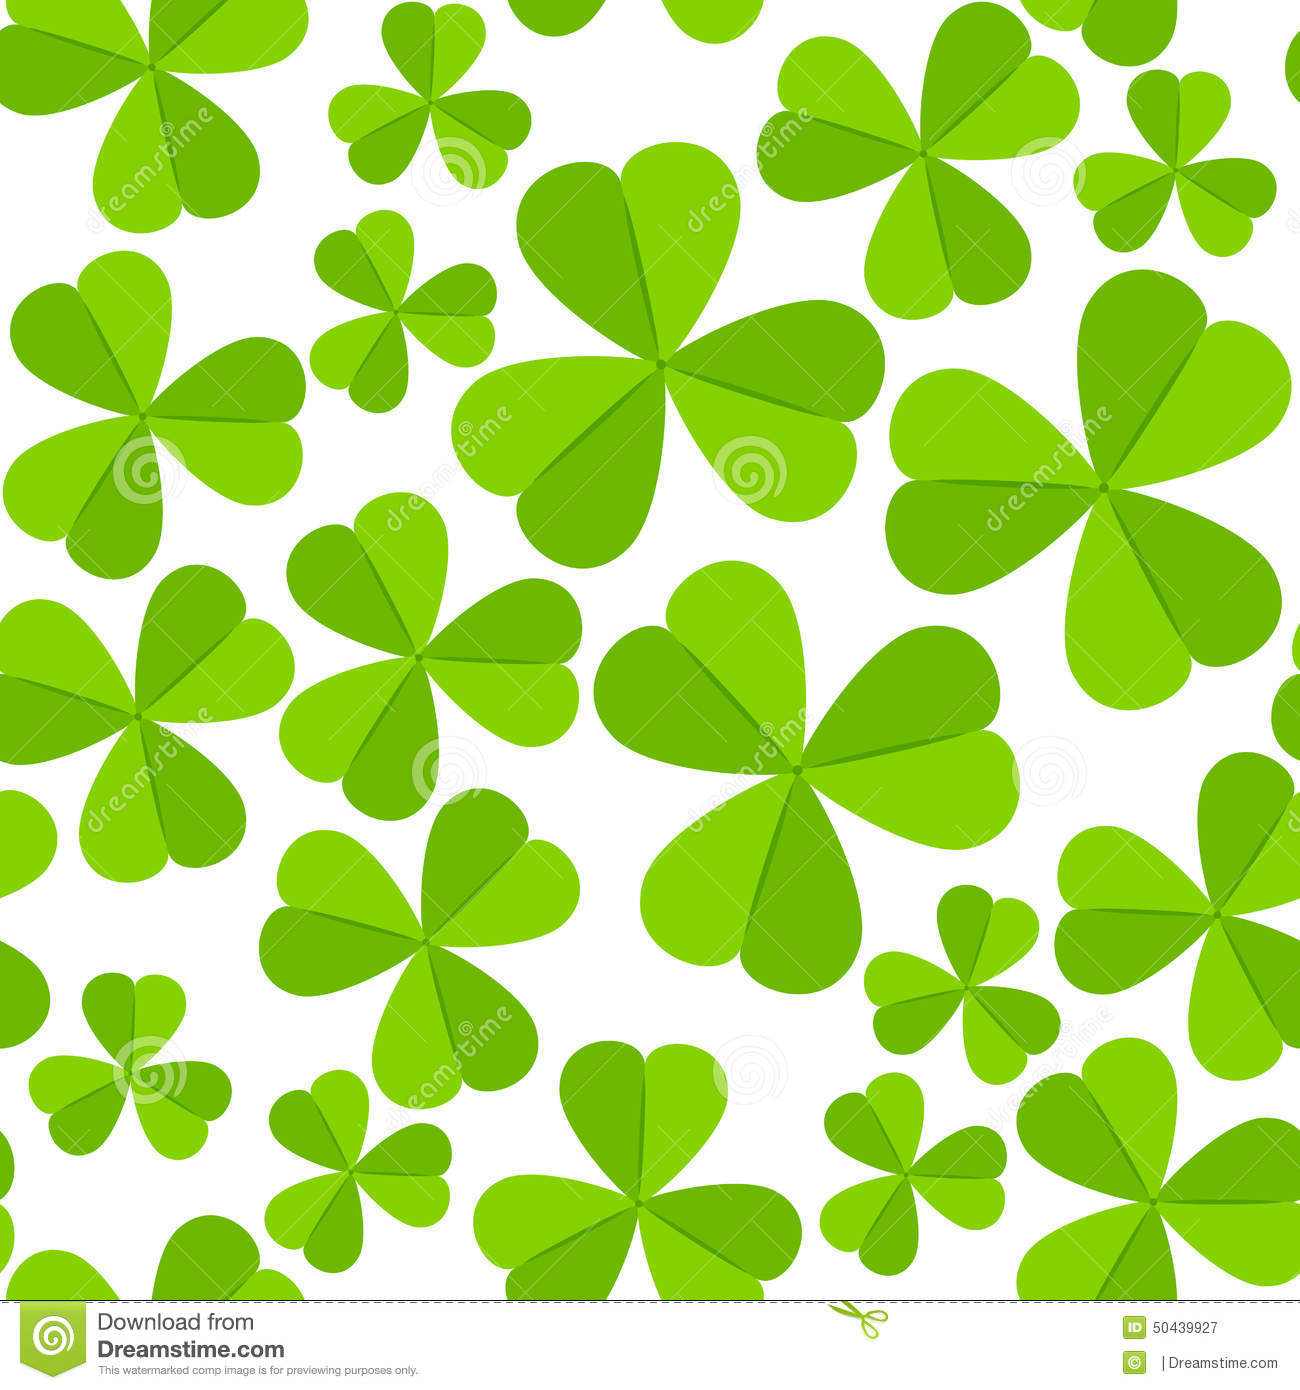 shamrock pattern wallpaper 1366x768 - photo #19